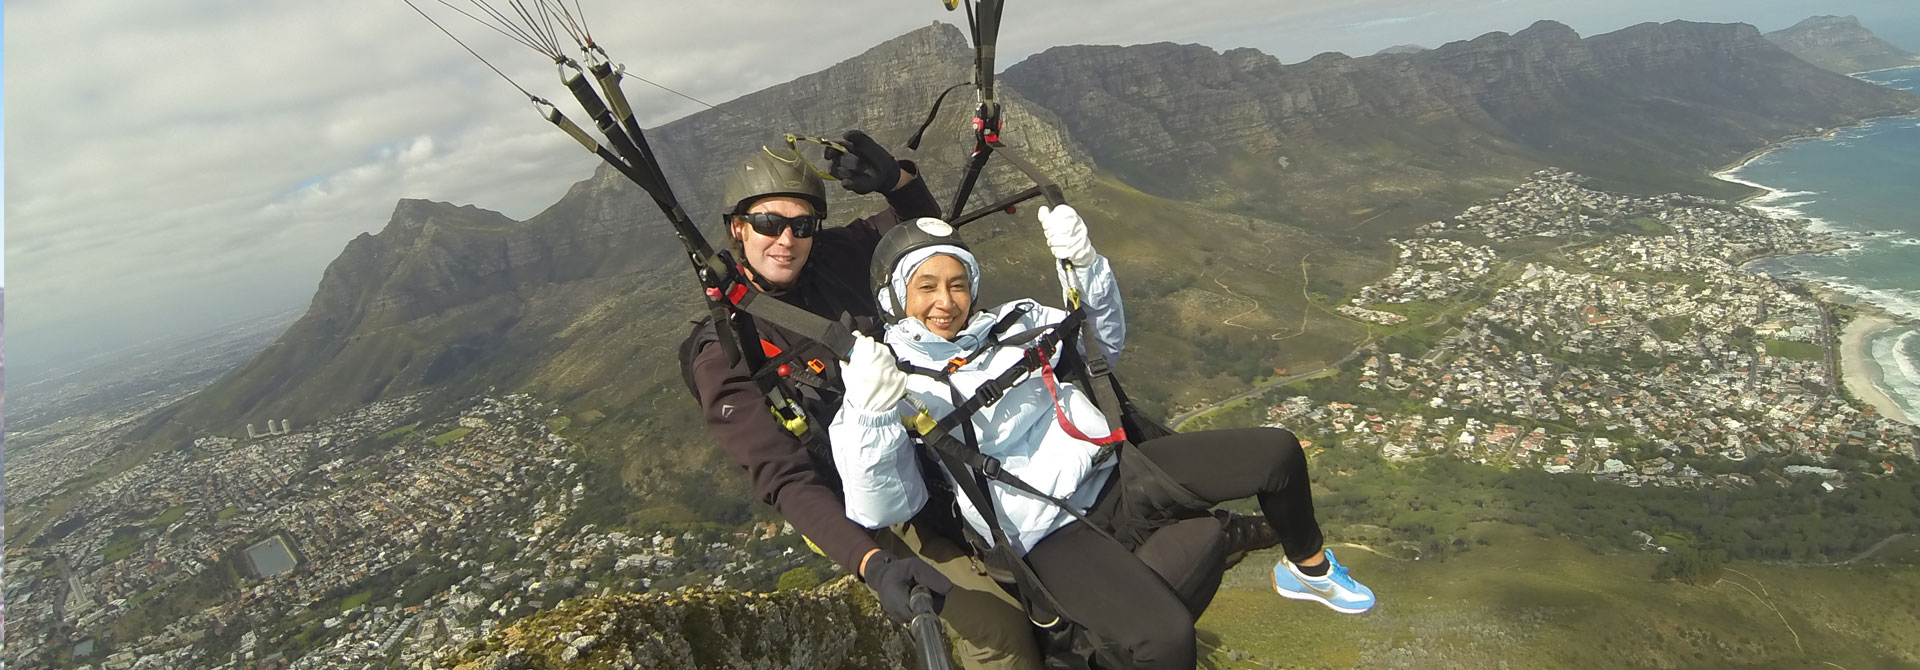 paragliding over lions head